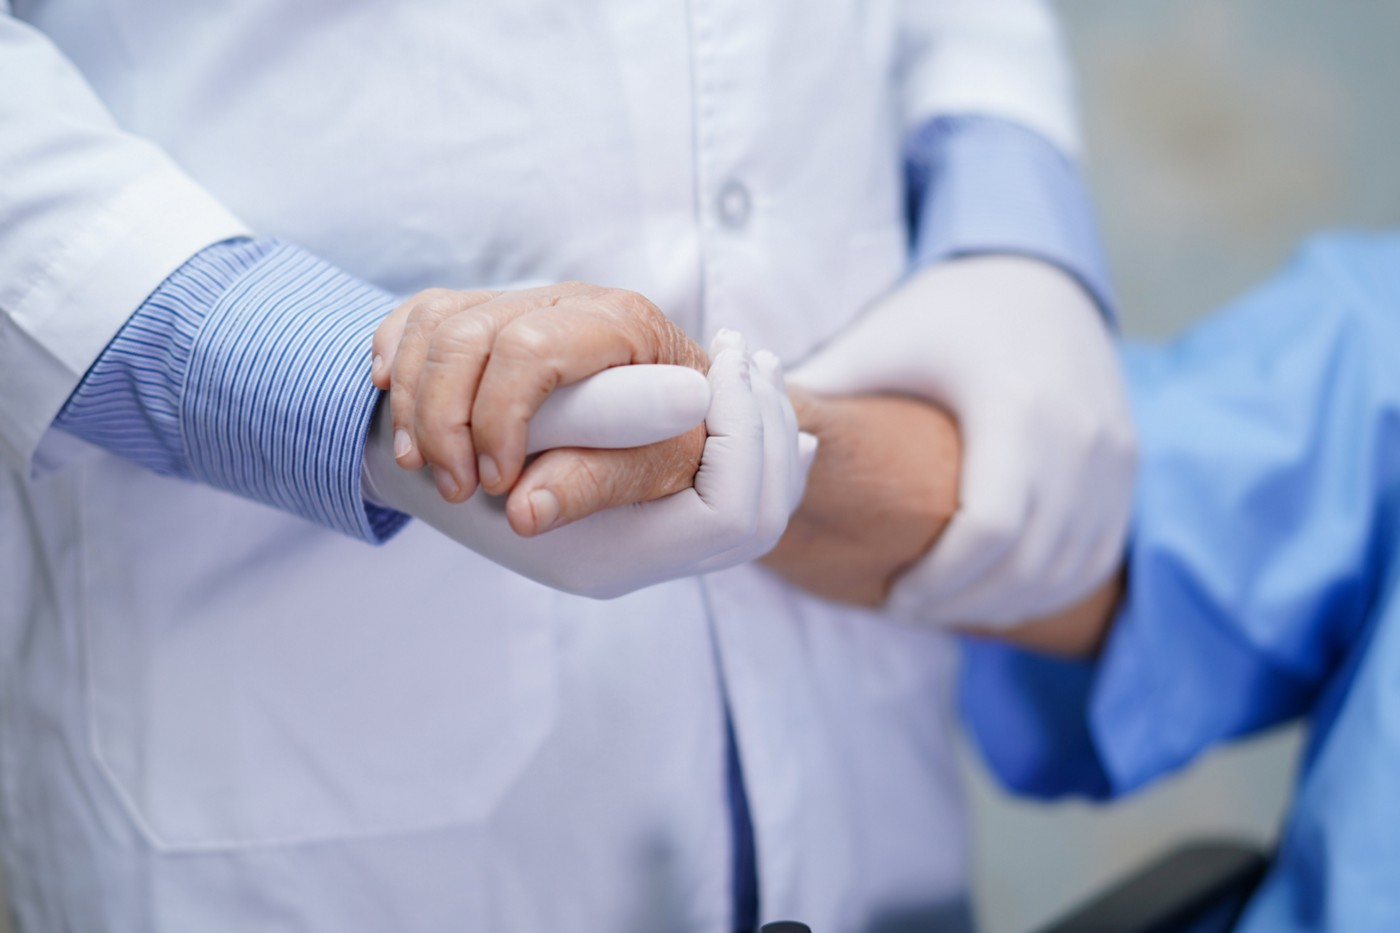 A photo of a patient holding a nurse's gloved hand.